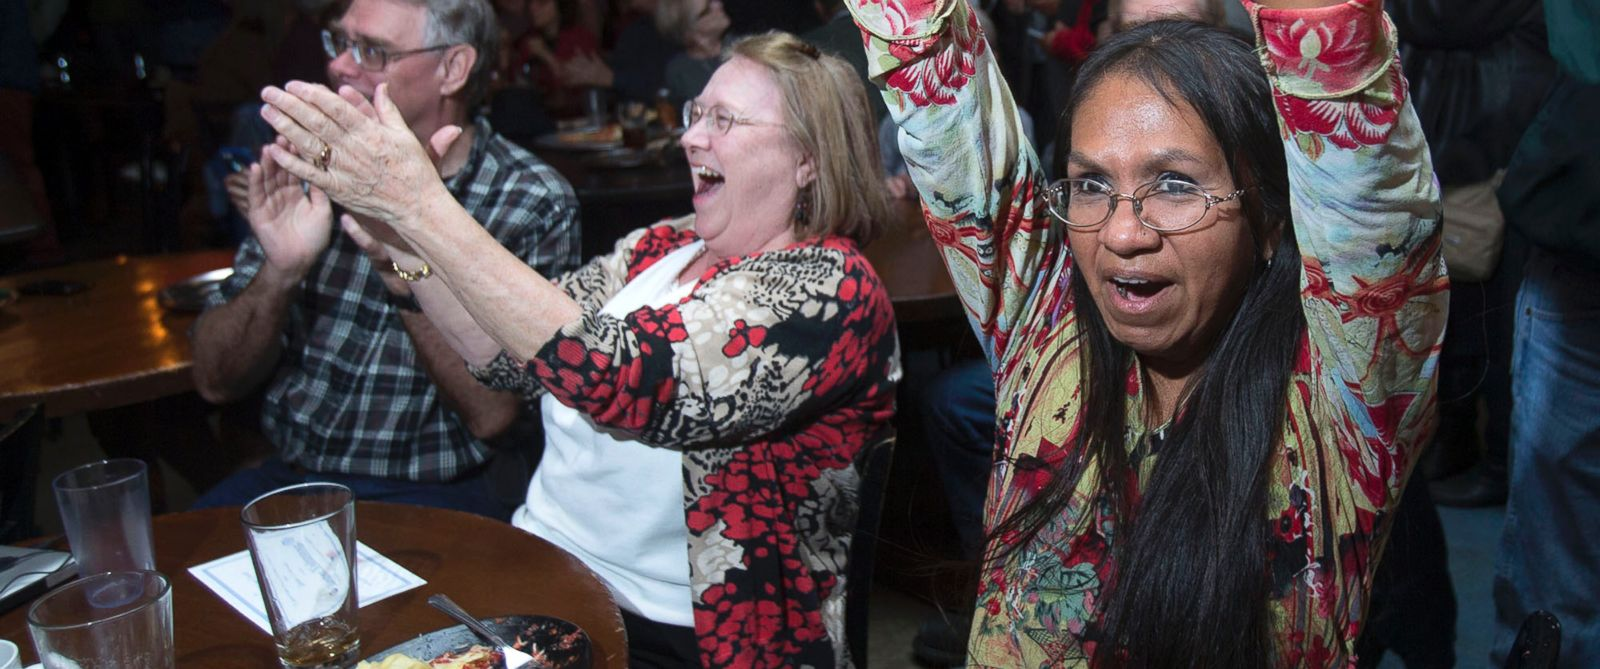 PHOTO: Sandra Shotridge, right, celebrates along with Zenia Liebman, center and Kevin Kidwell in Eugene, Ore., Nov. 4, 2014, as it is announced Measure 91 legalizing recreational marijuana was approved by voters.